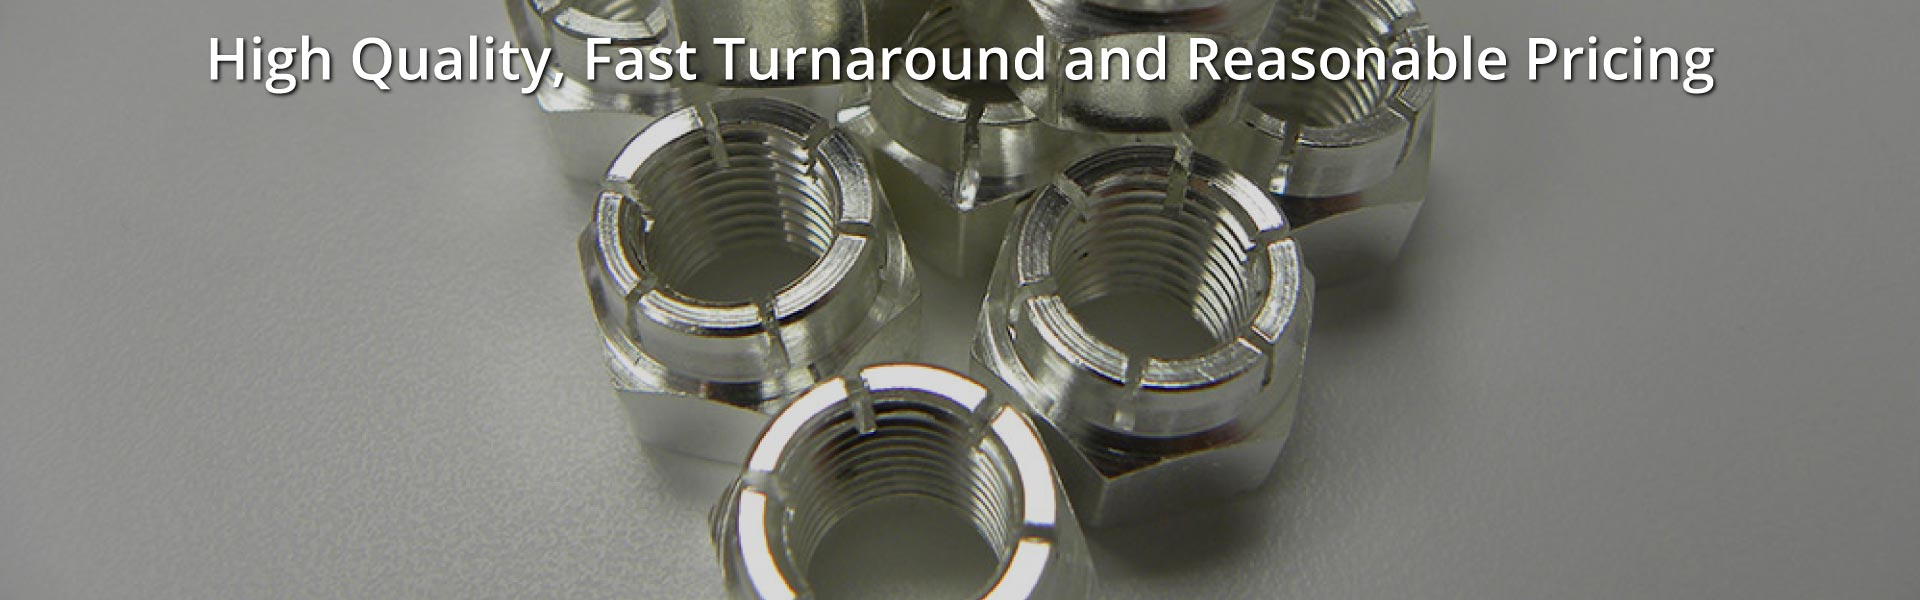 High Quality, Fast Turnaround and Reasonable Pricing | Silver over stainless steel